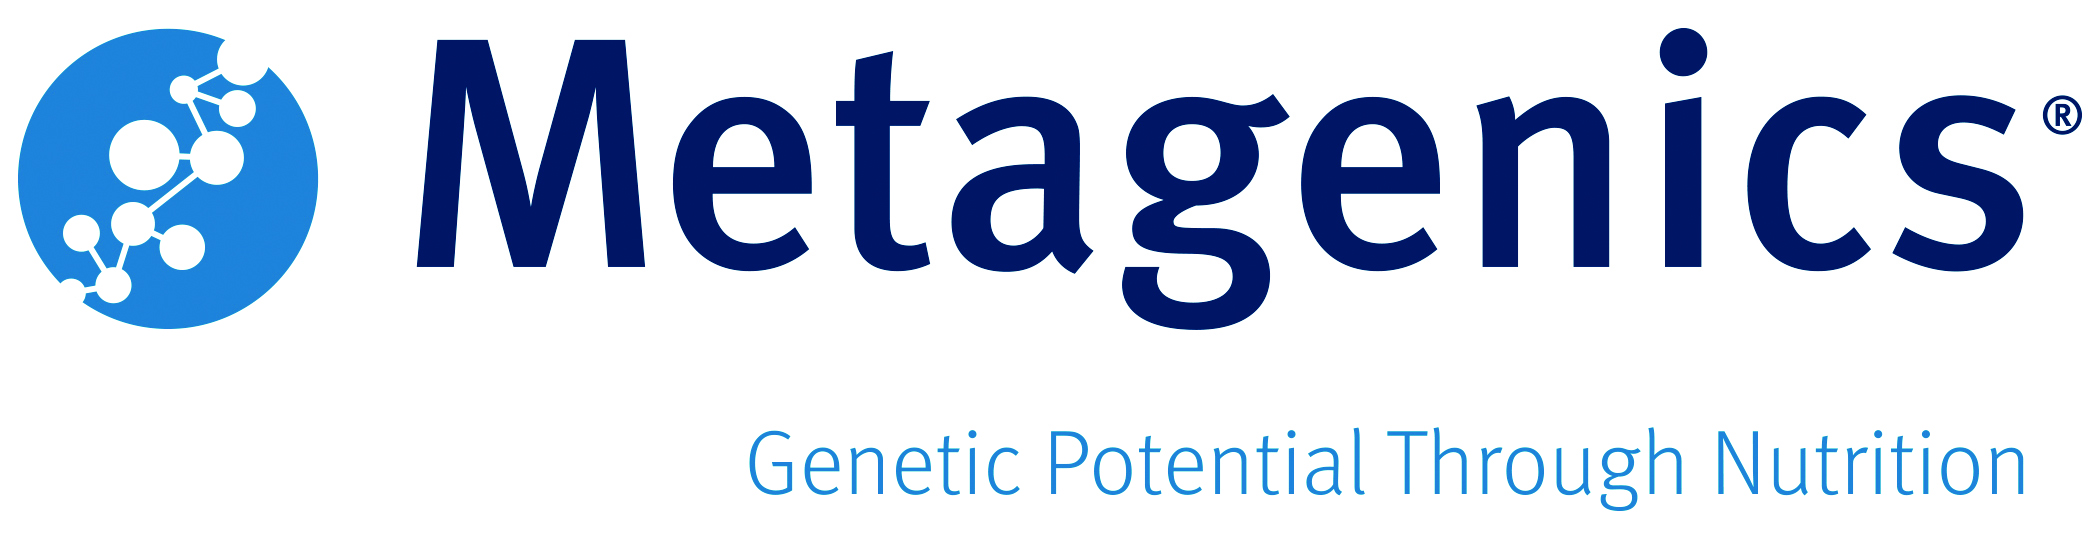 Metagenics-Logo 8.5x11